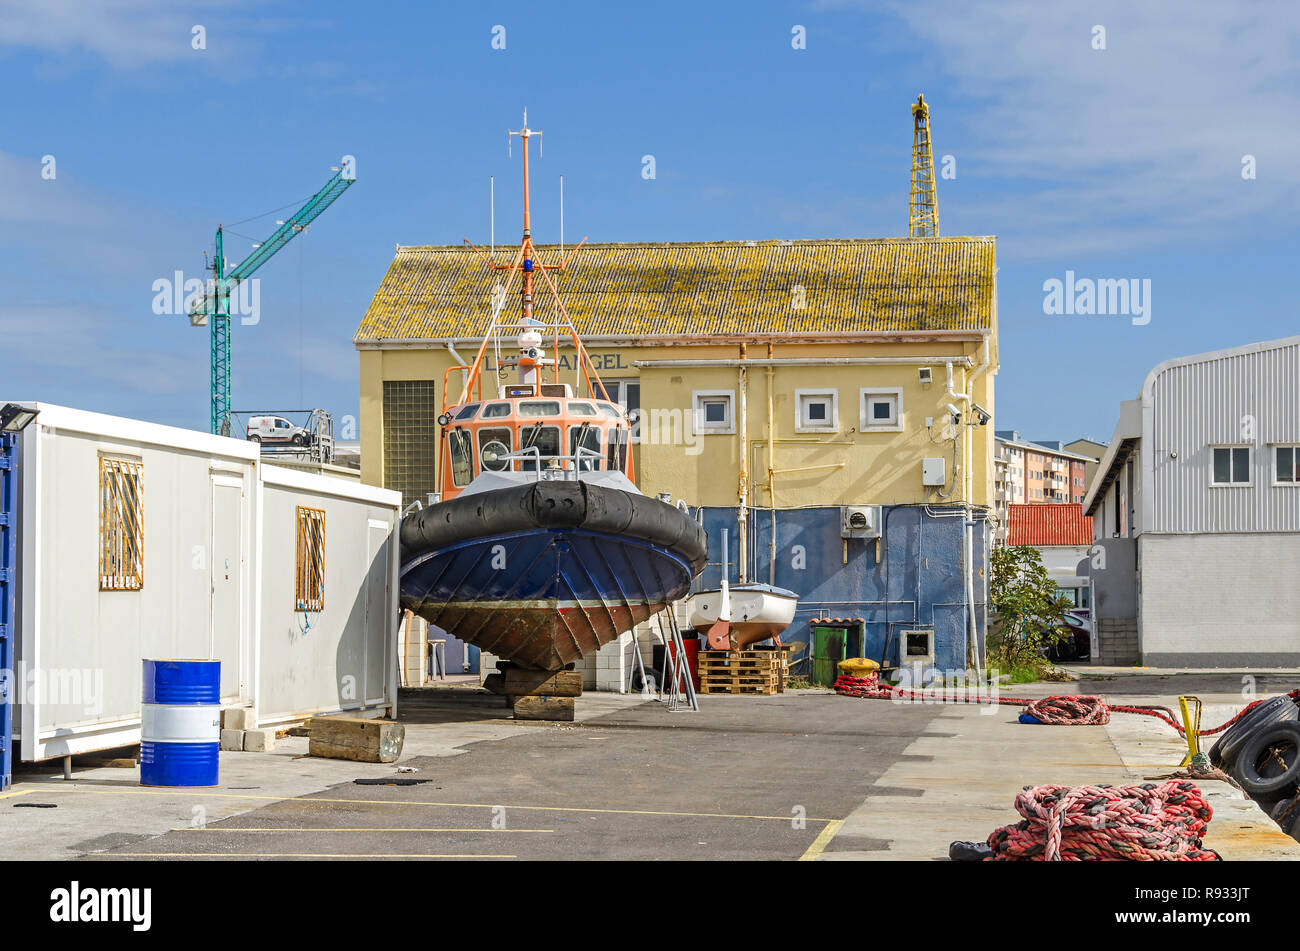 Gibraltar, British Overseas Territory -  November 8, 2018: Harbor with a towboat, old port building and cranes - Stock Image